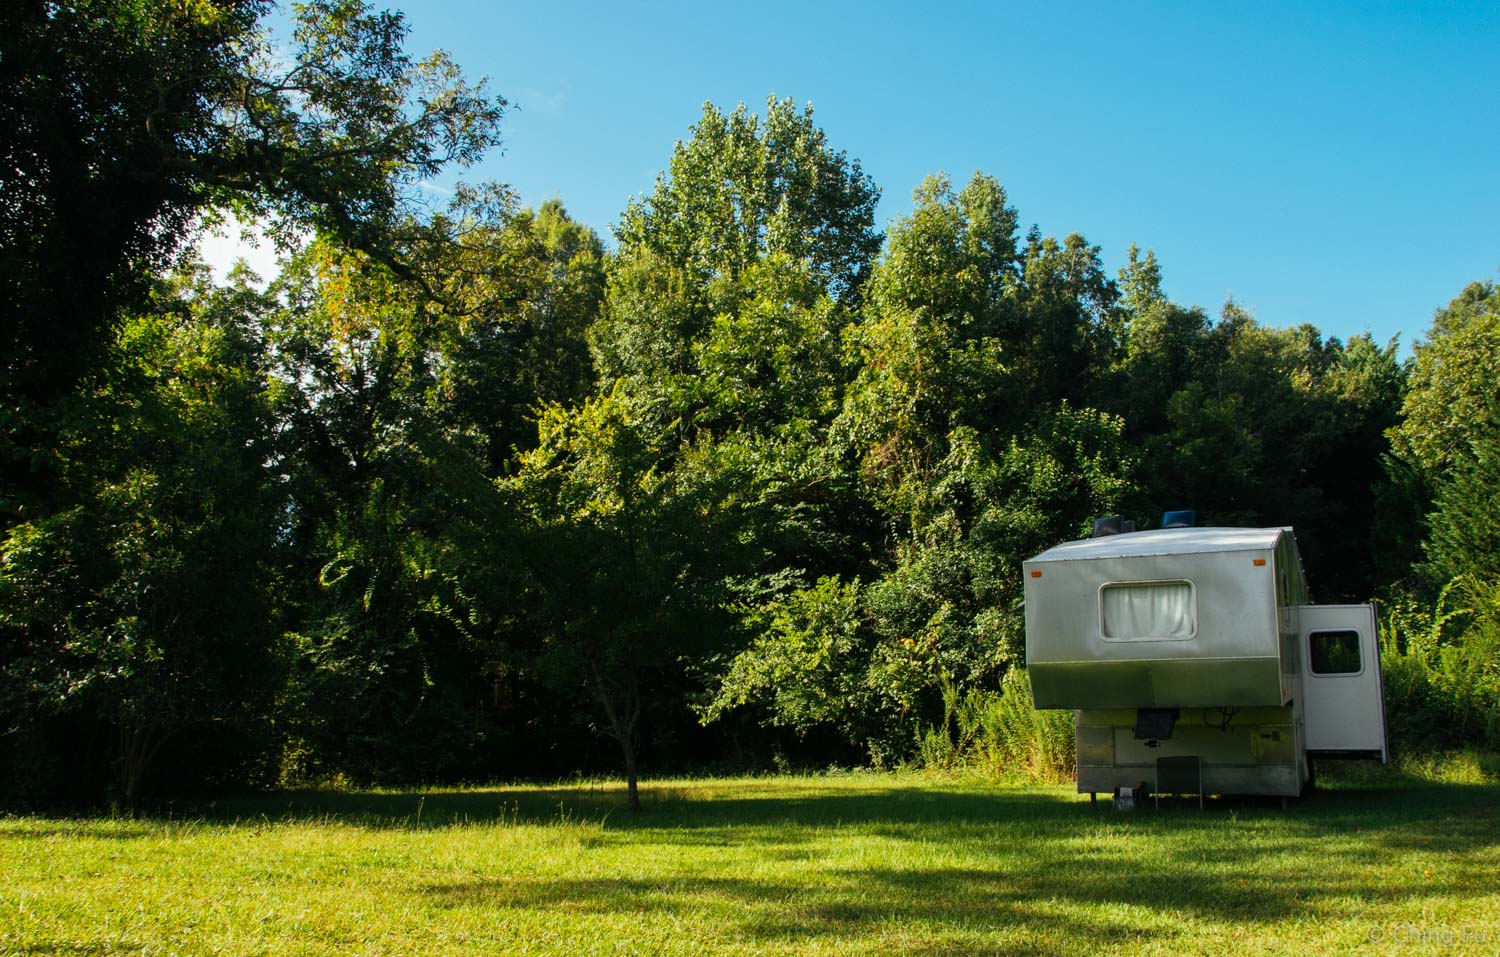 Boondocking in the Toaster